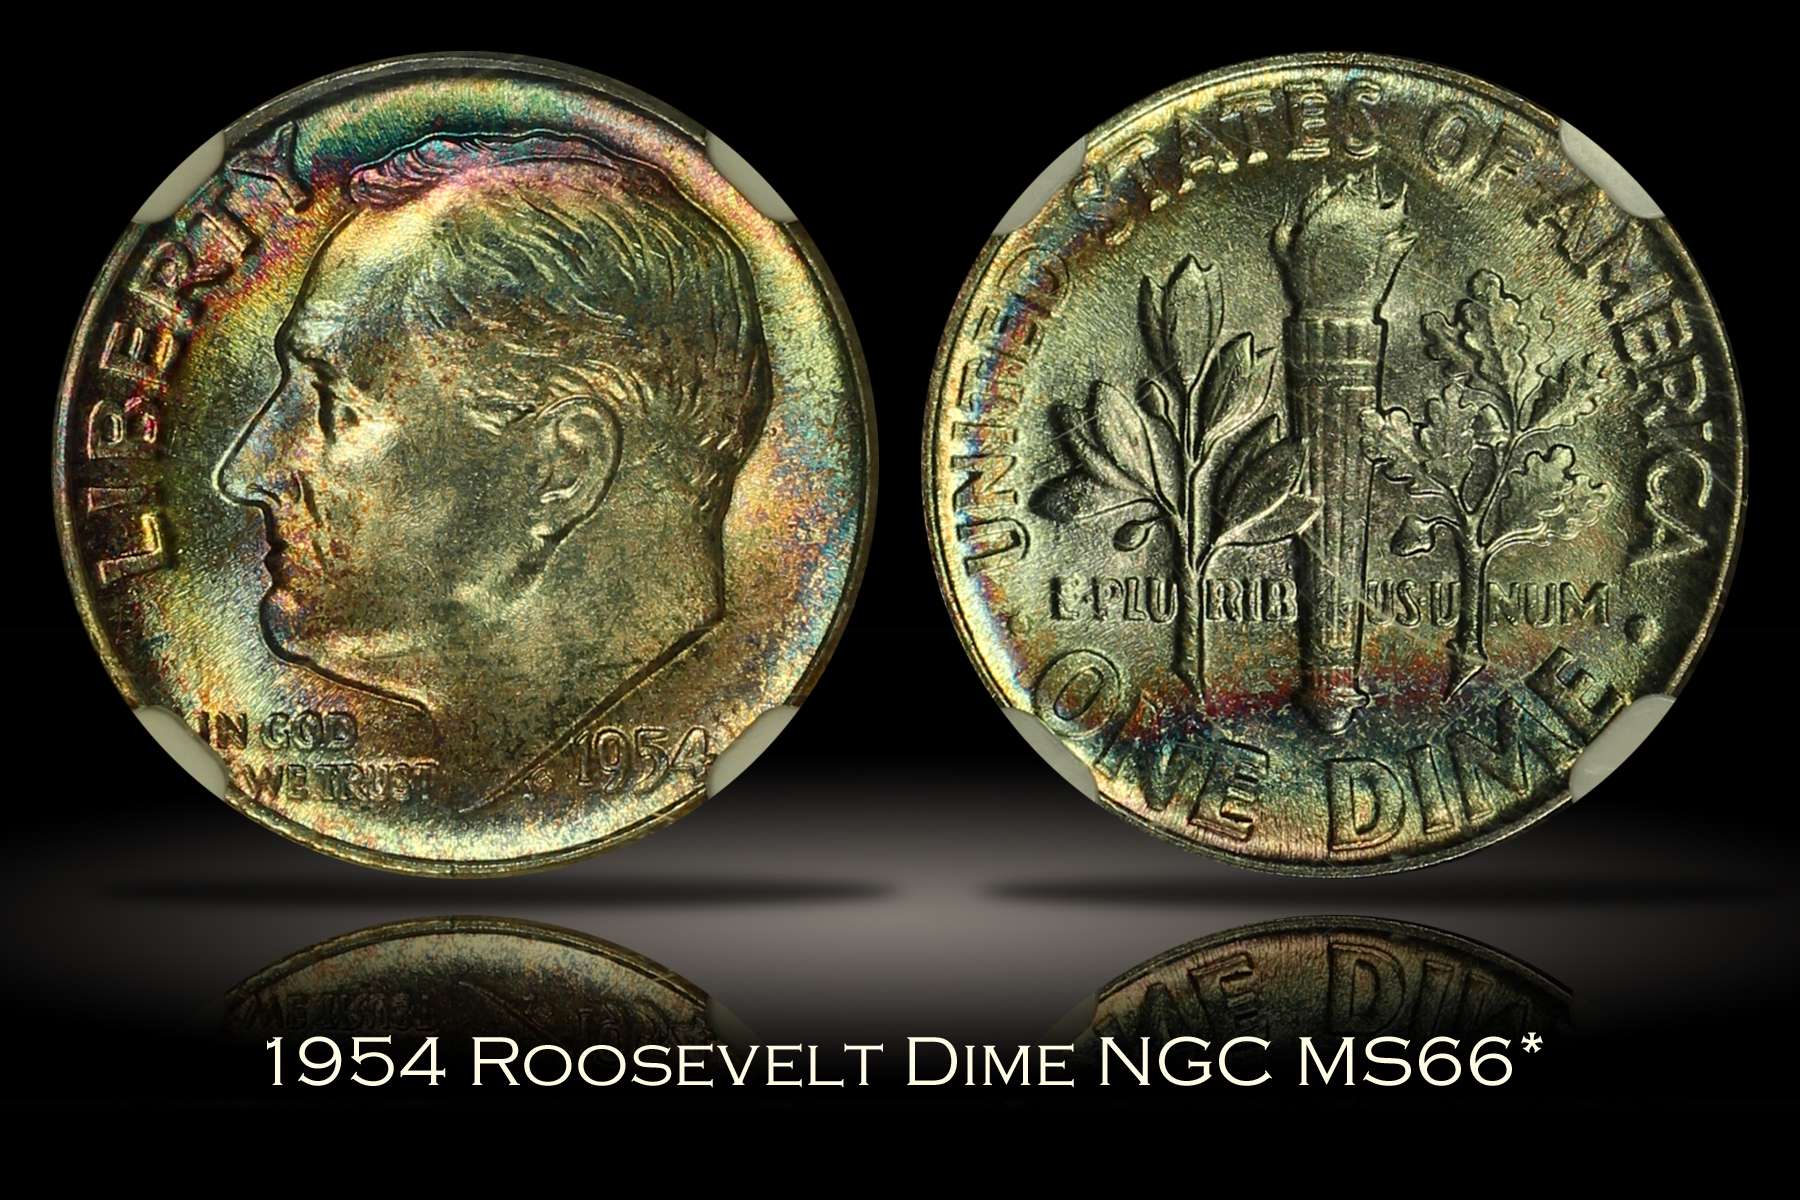 1954 Roosevelt Dime NGC MS66*